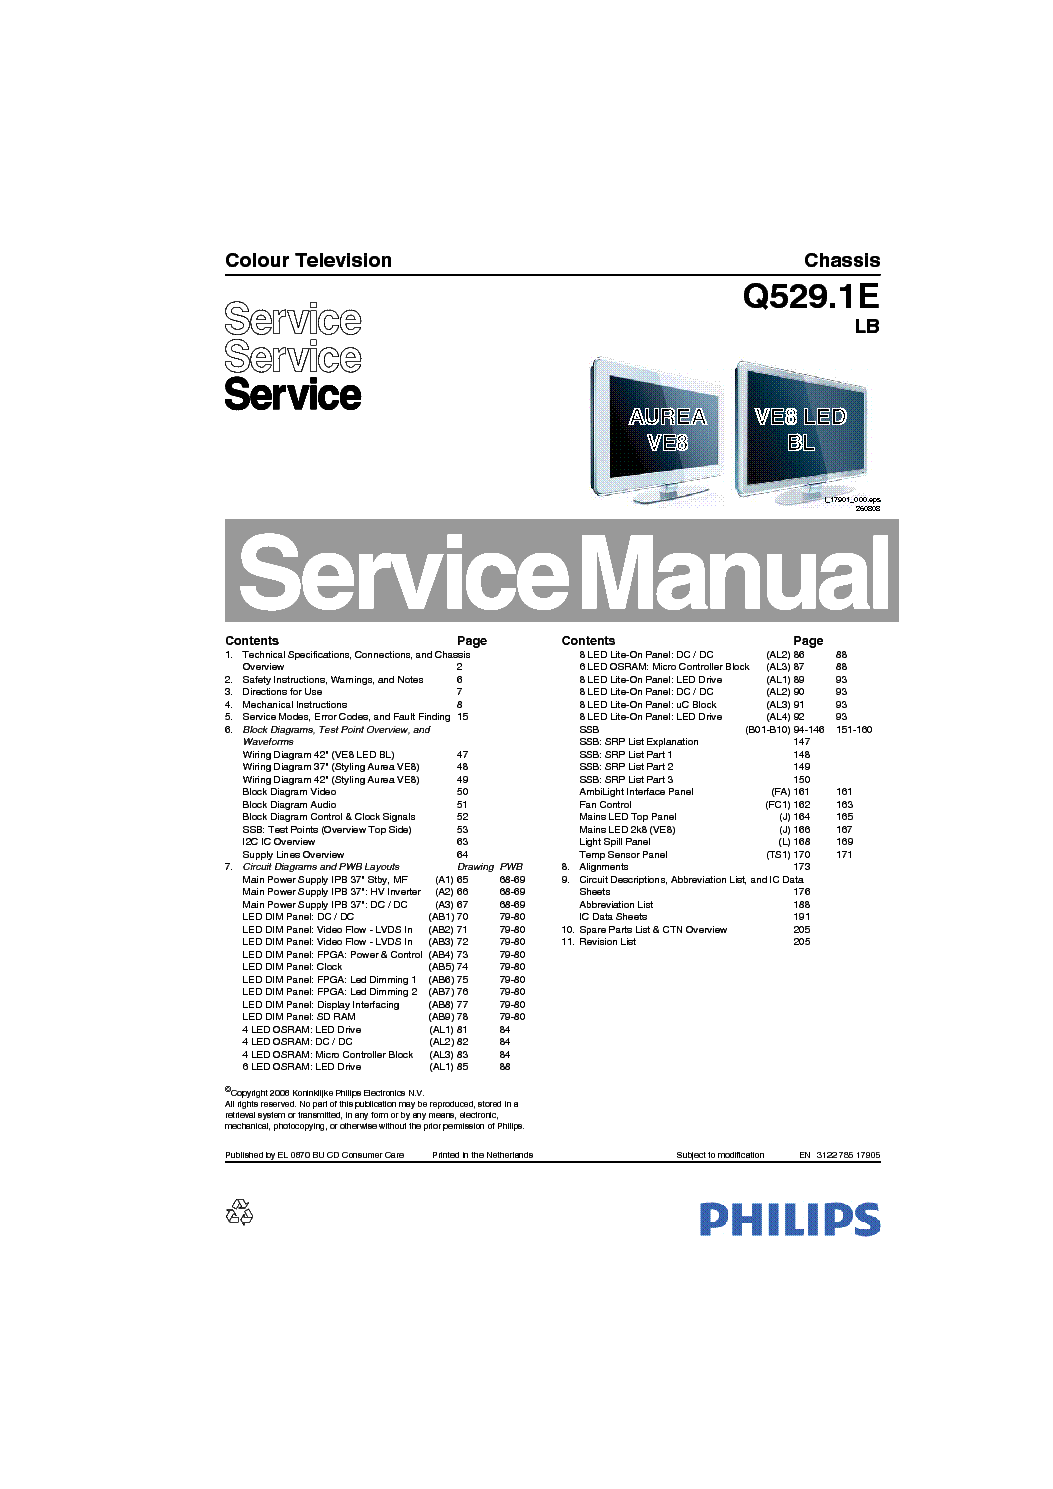 philips q529 1e lb chassis lcd service manual download